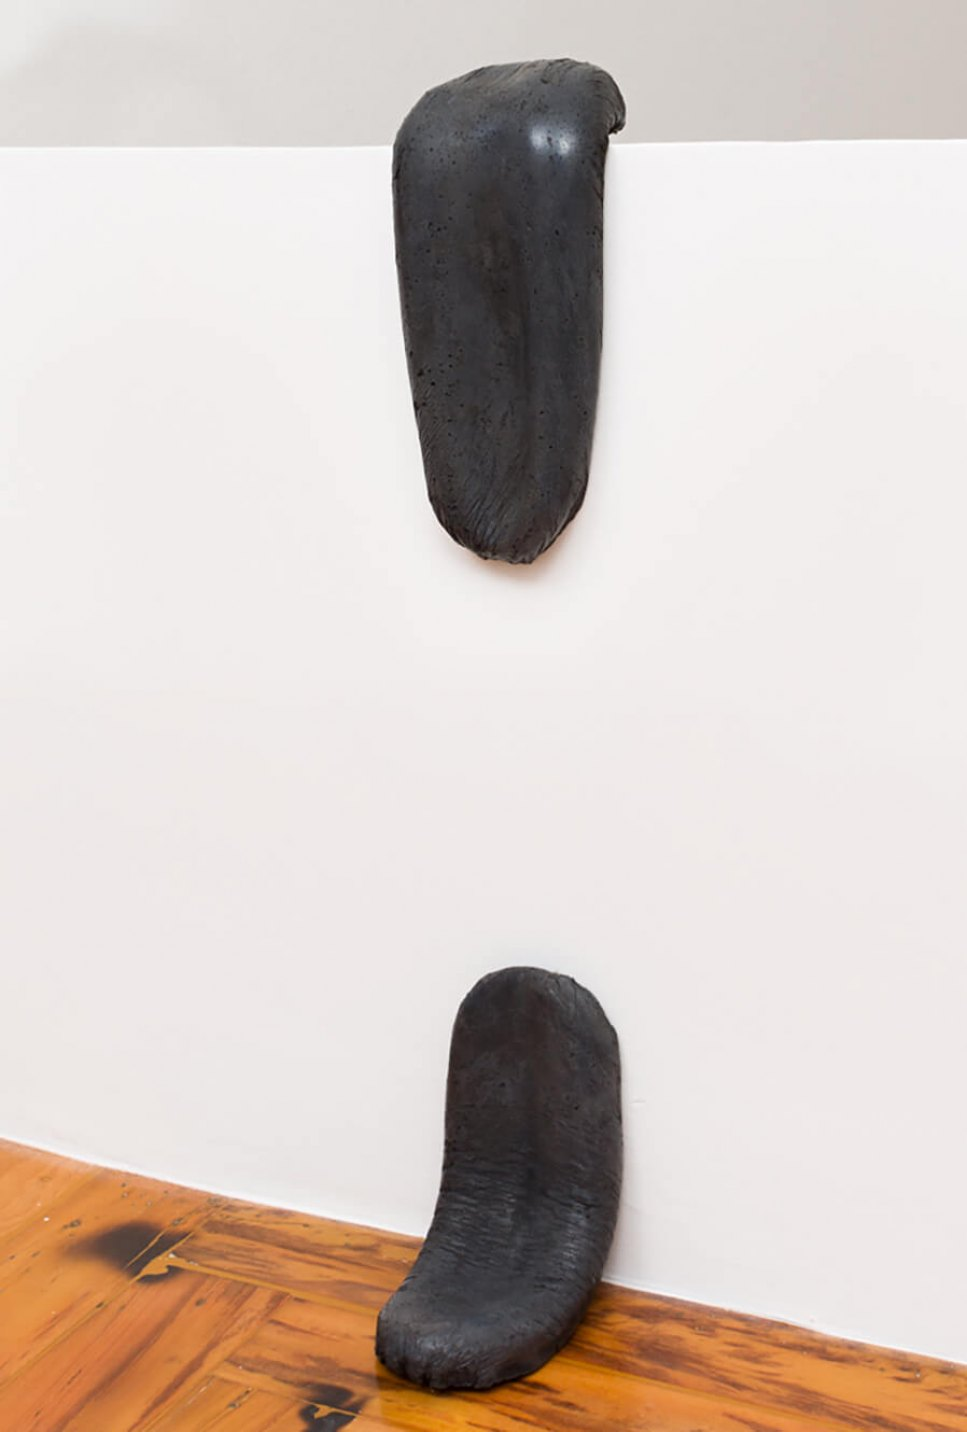 Michael Dean, <em>Analogue Series (muscle)</em>, 2014, concrete (each), 10 × 19 × 7 cm - Mendes Wood DM